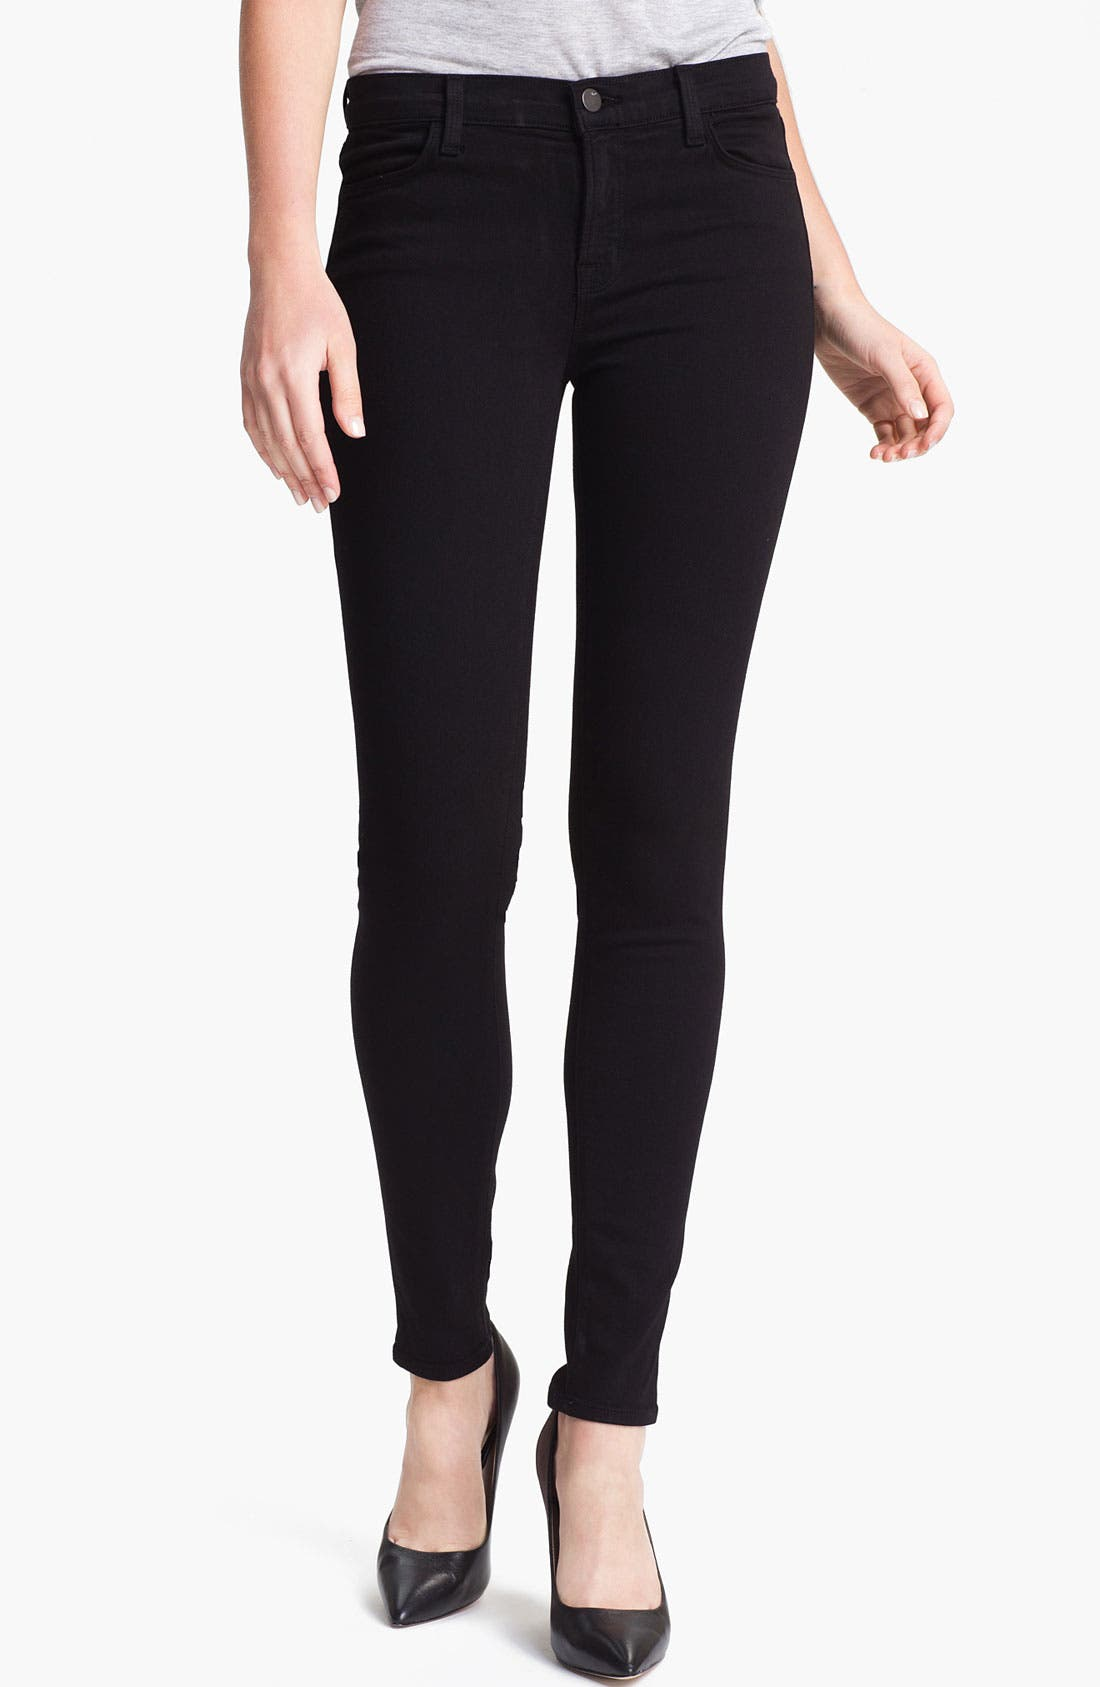 Main Image - J Brand Super Skinny Stretch Jeans (Black)